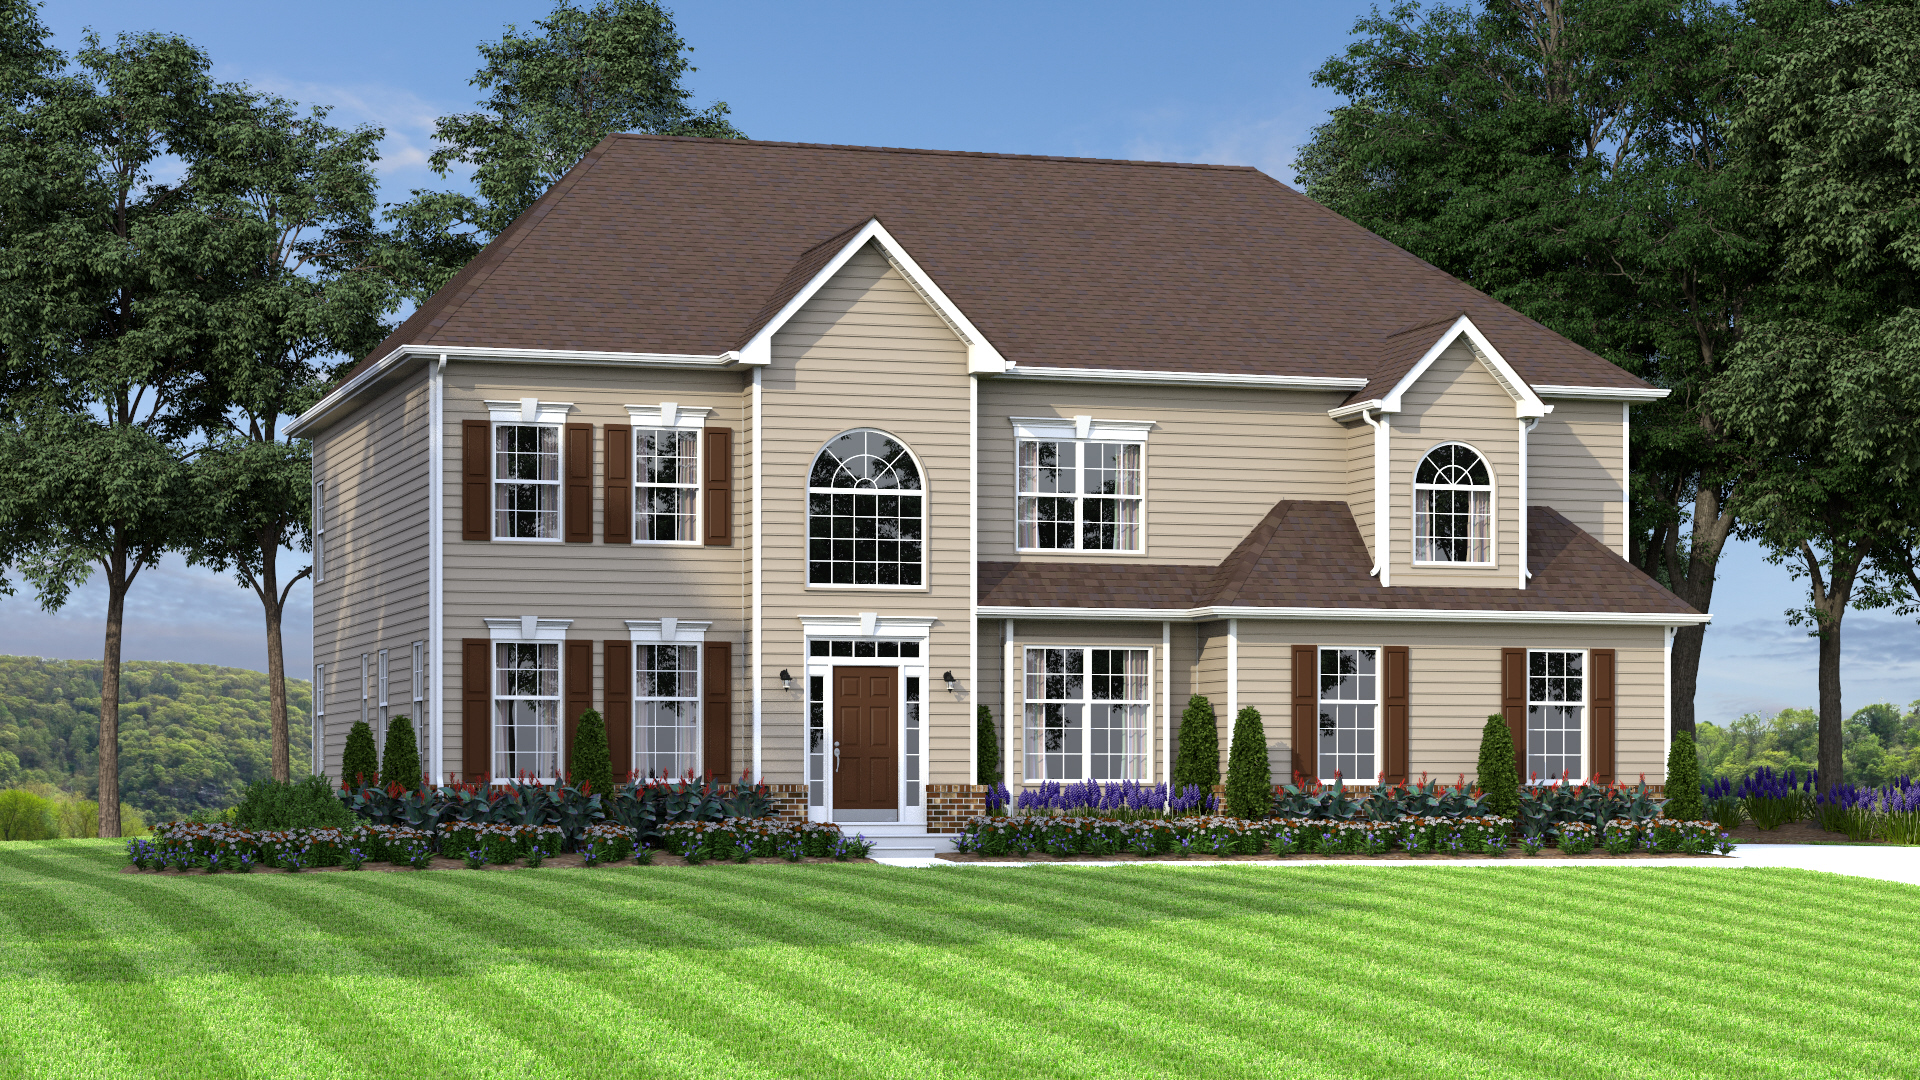 The Gladwyne  3,500 sf / 4 br / 2.5 ba / 2 car garage Starting at $351,990